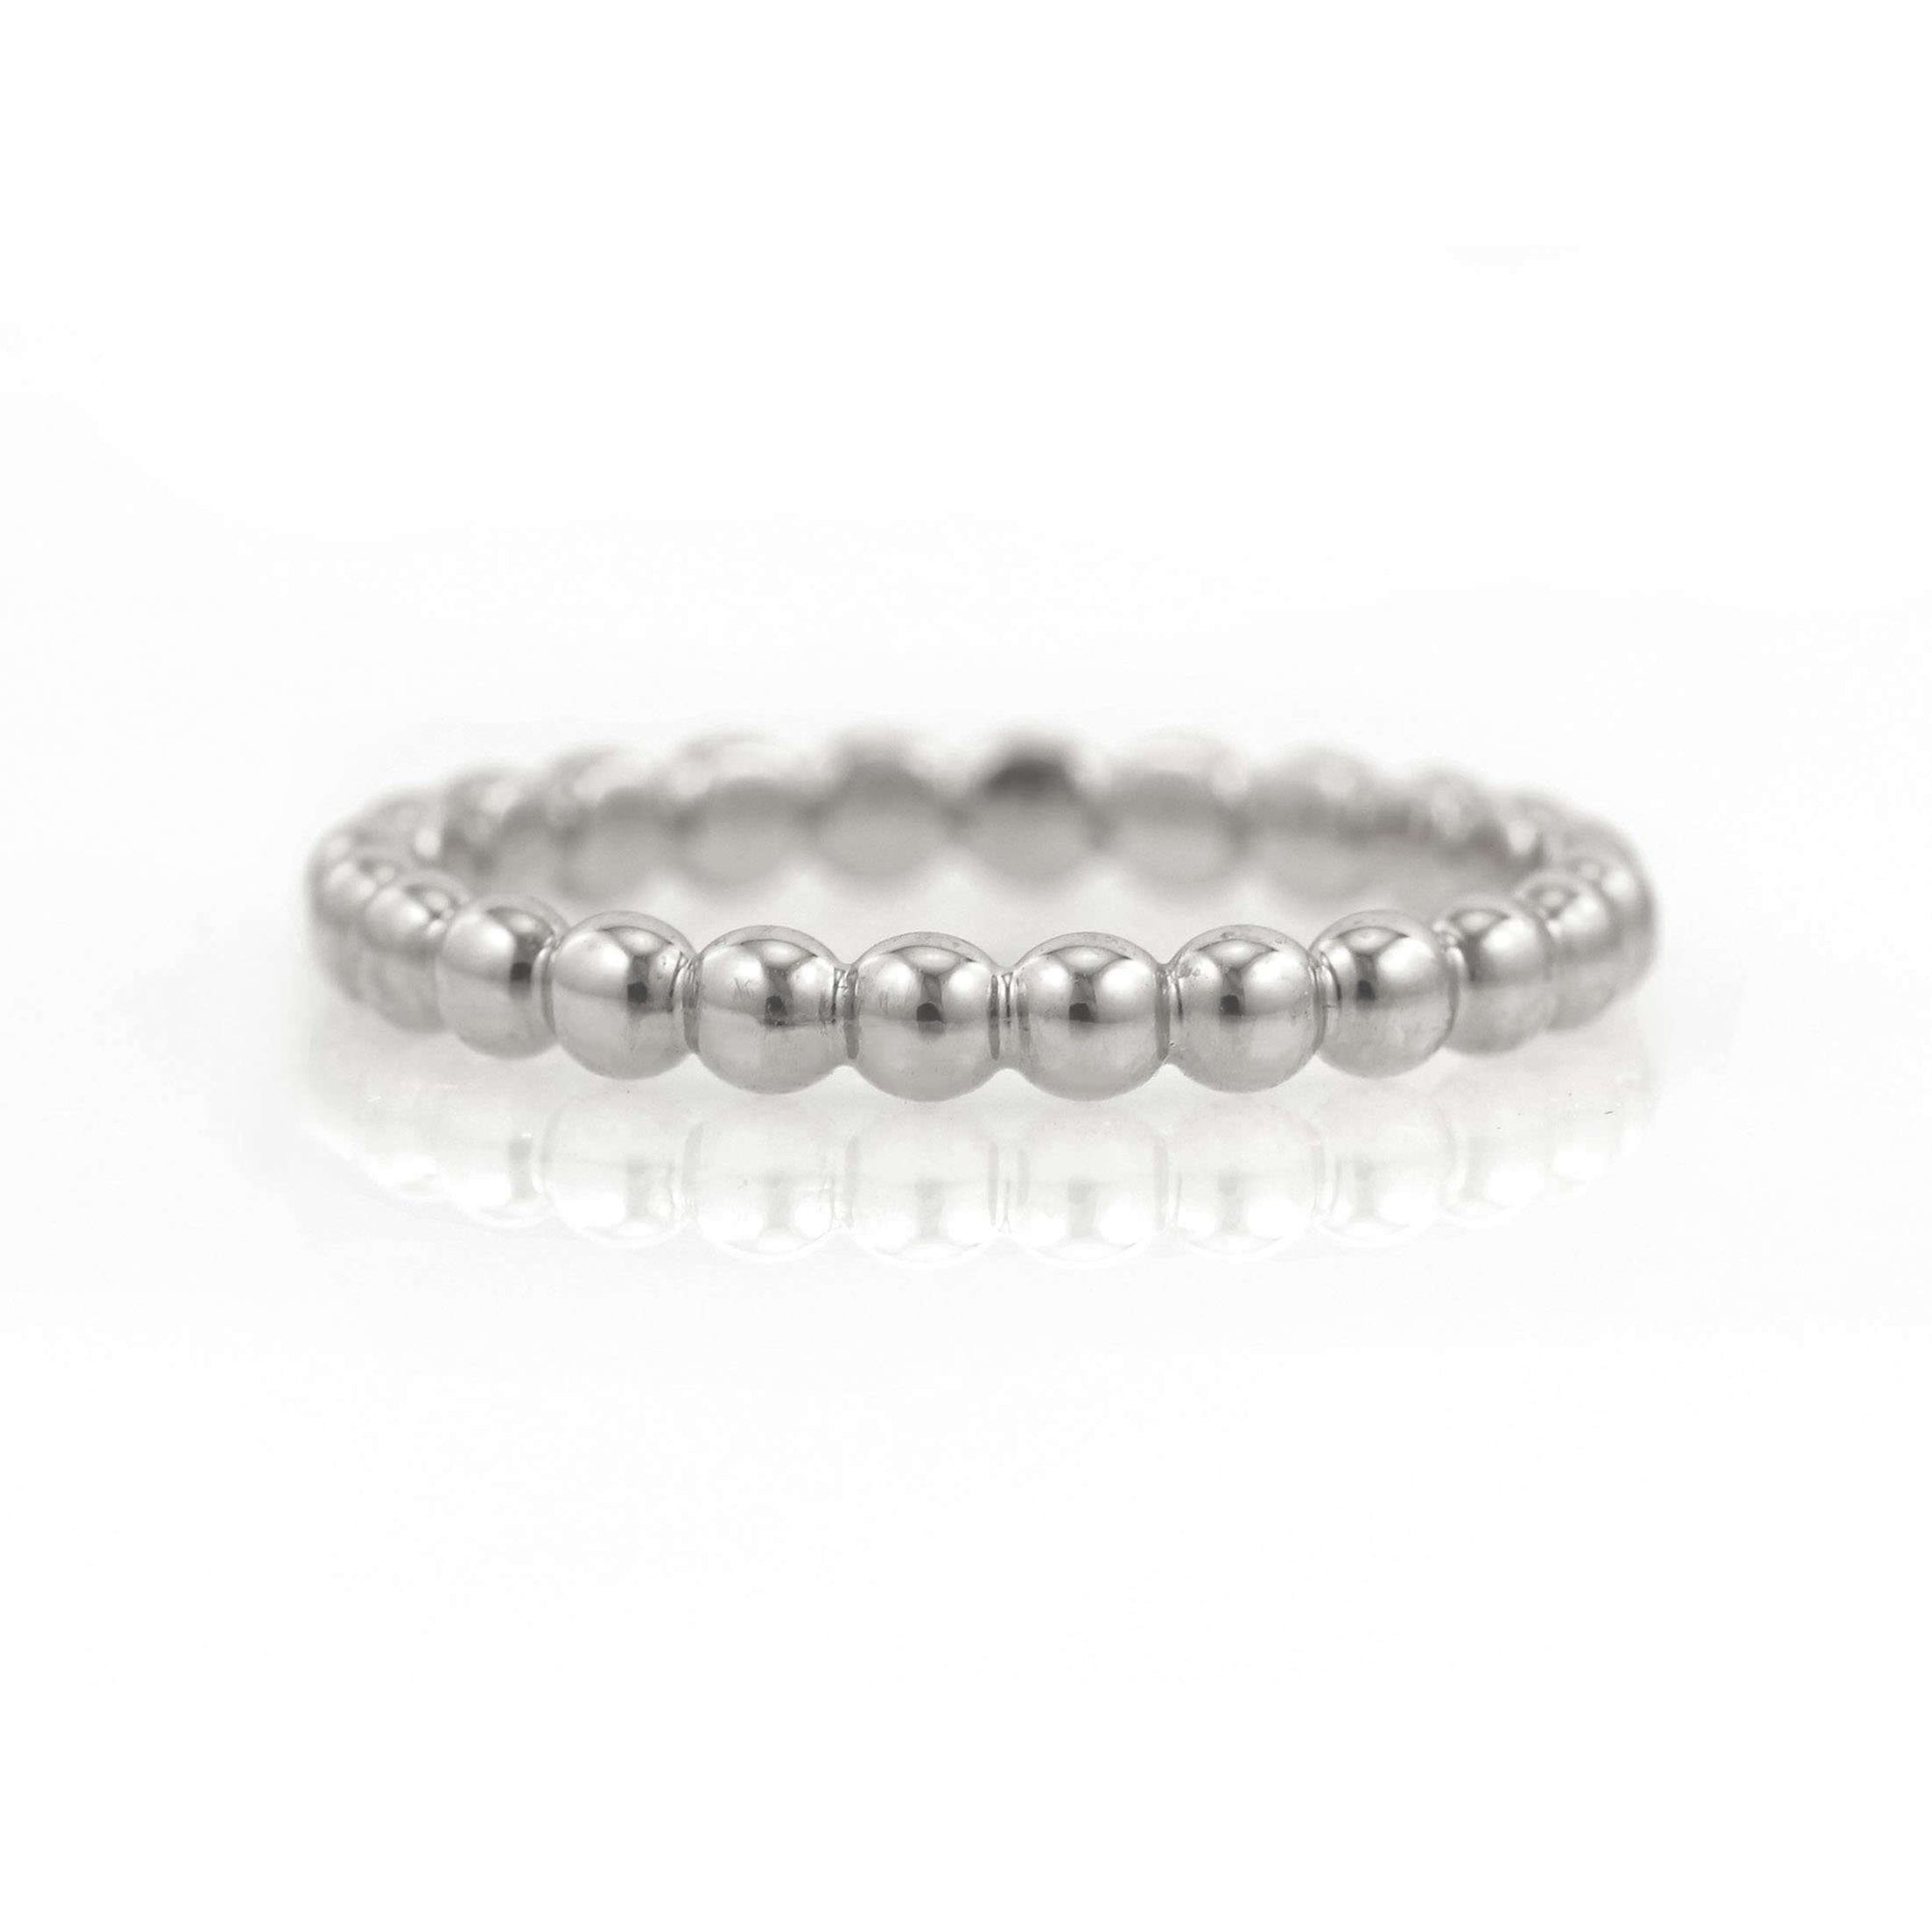 Beaded Eternity Band | Palladium White Gold | Platinum | 950 Palladium